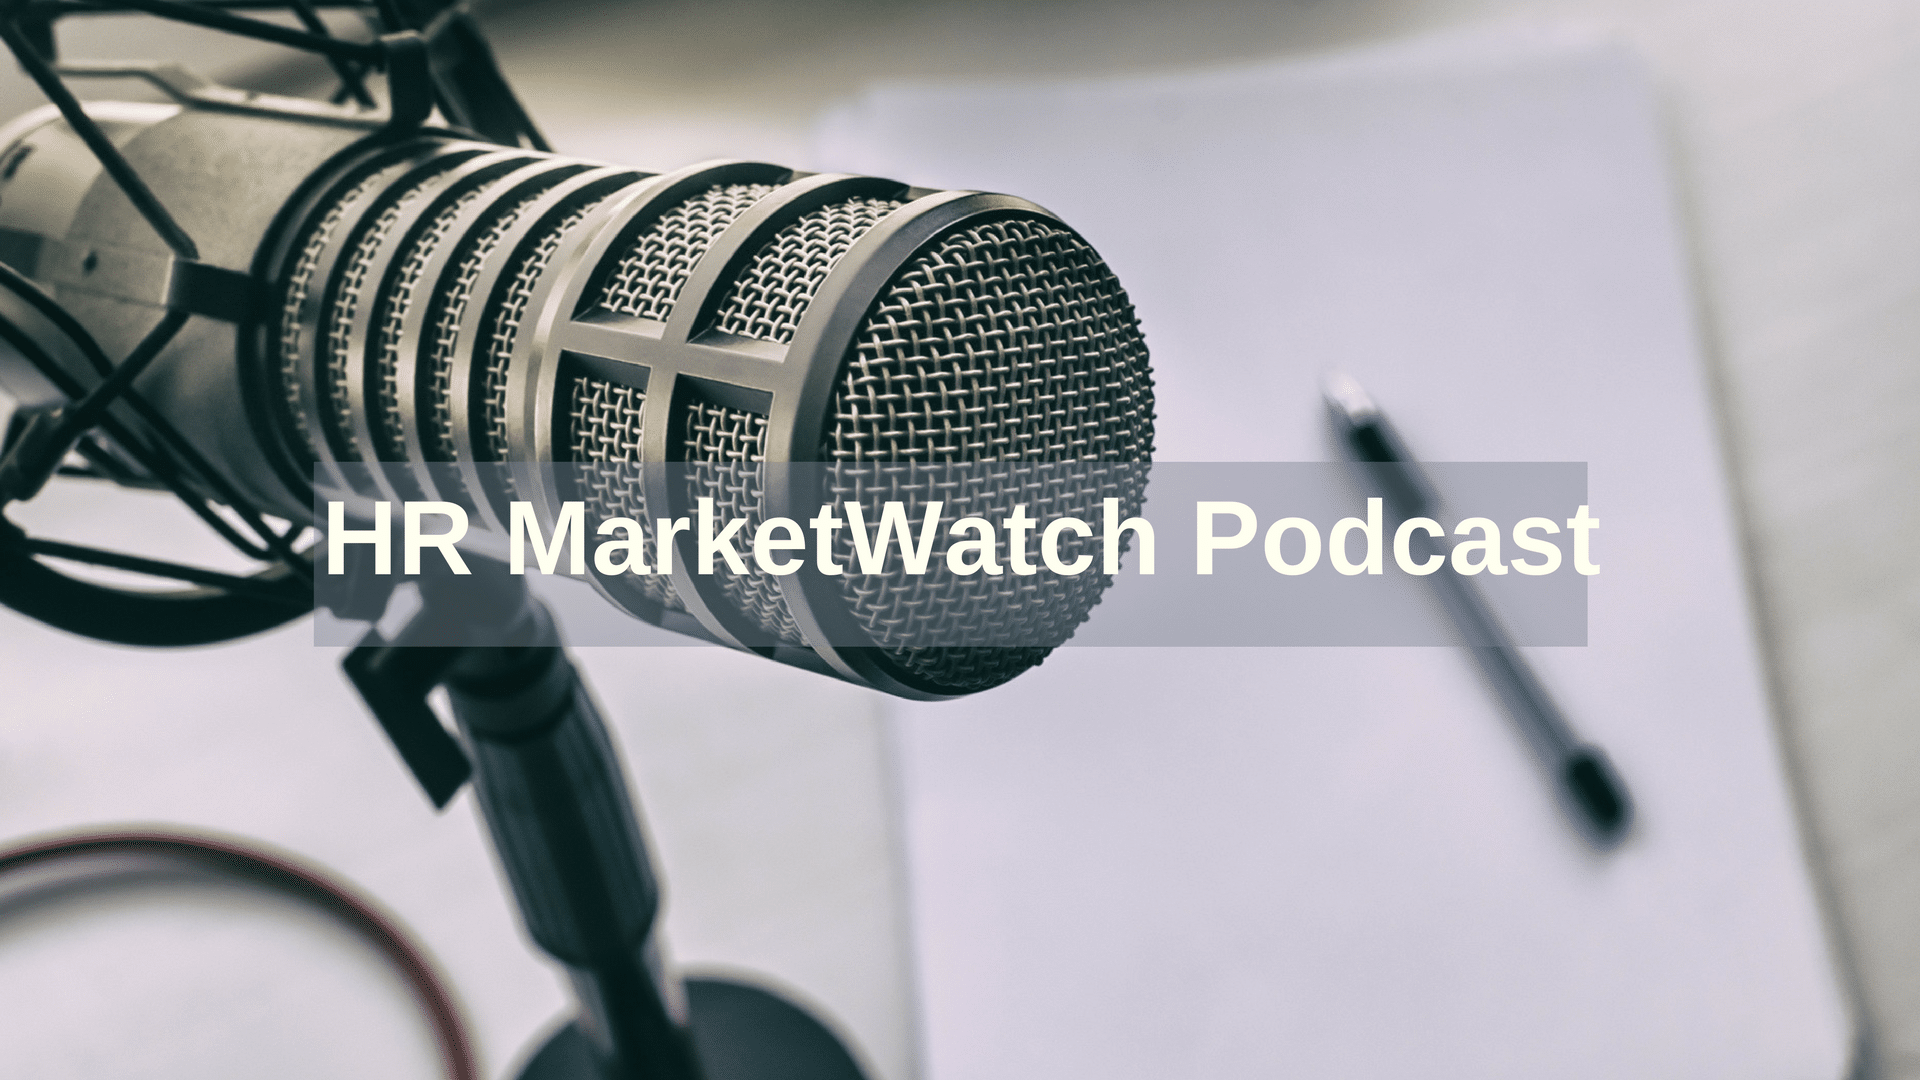 HR MarketWatch Podcast: Mentors and Deals